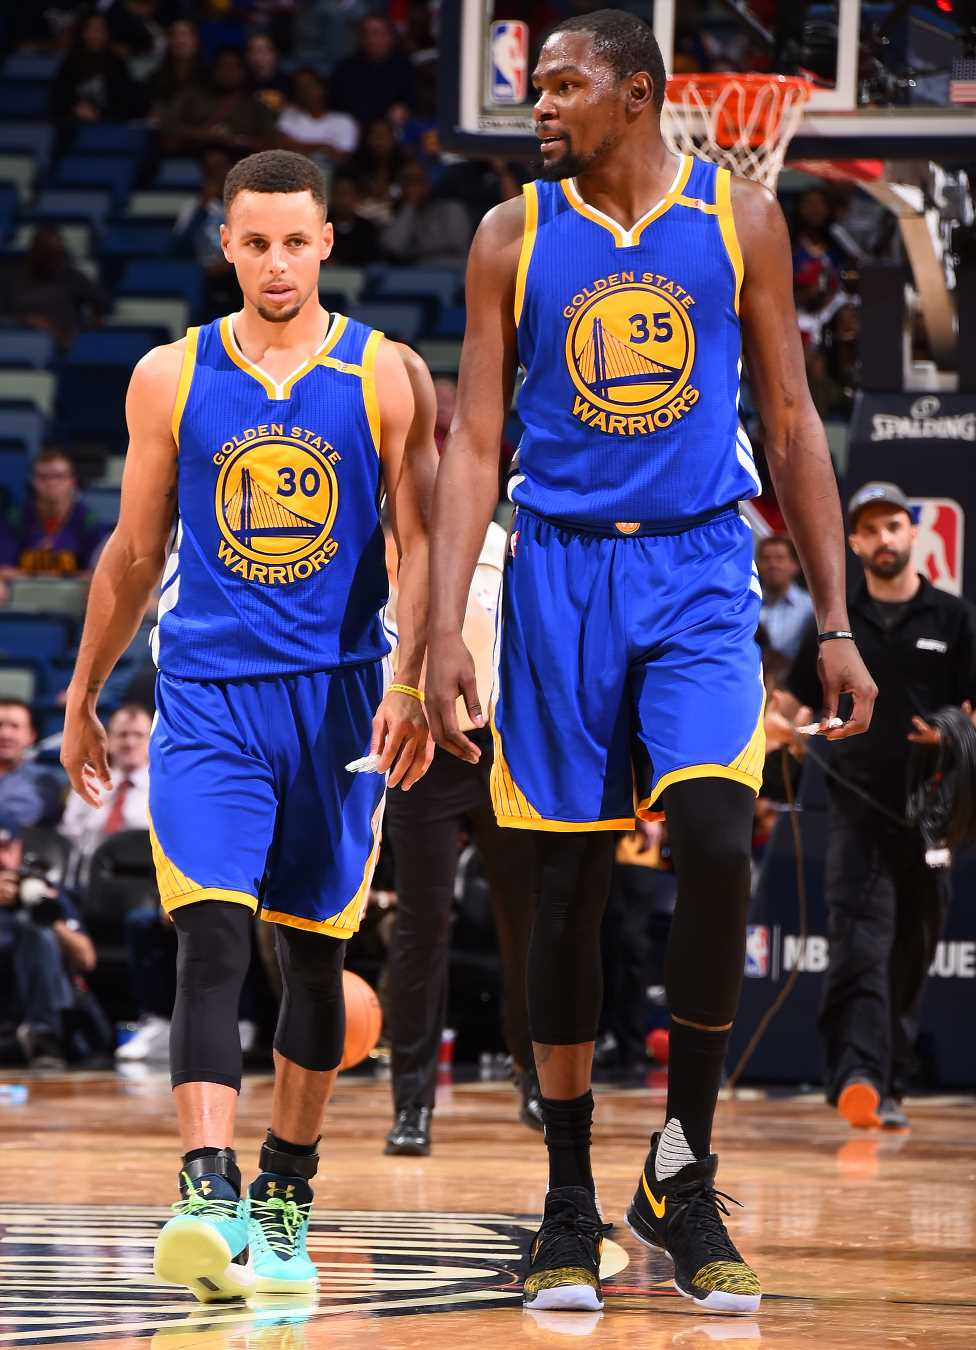 Stephen Curry Responds to Kevin Durant's Claim He Didn't Fit in with Warriors: 'That's Tough'